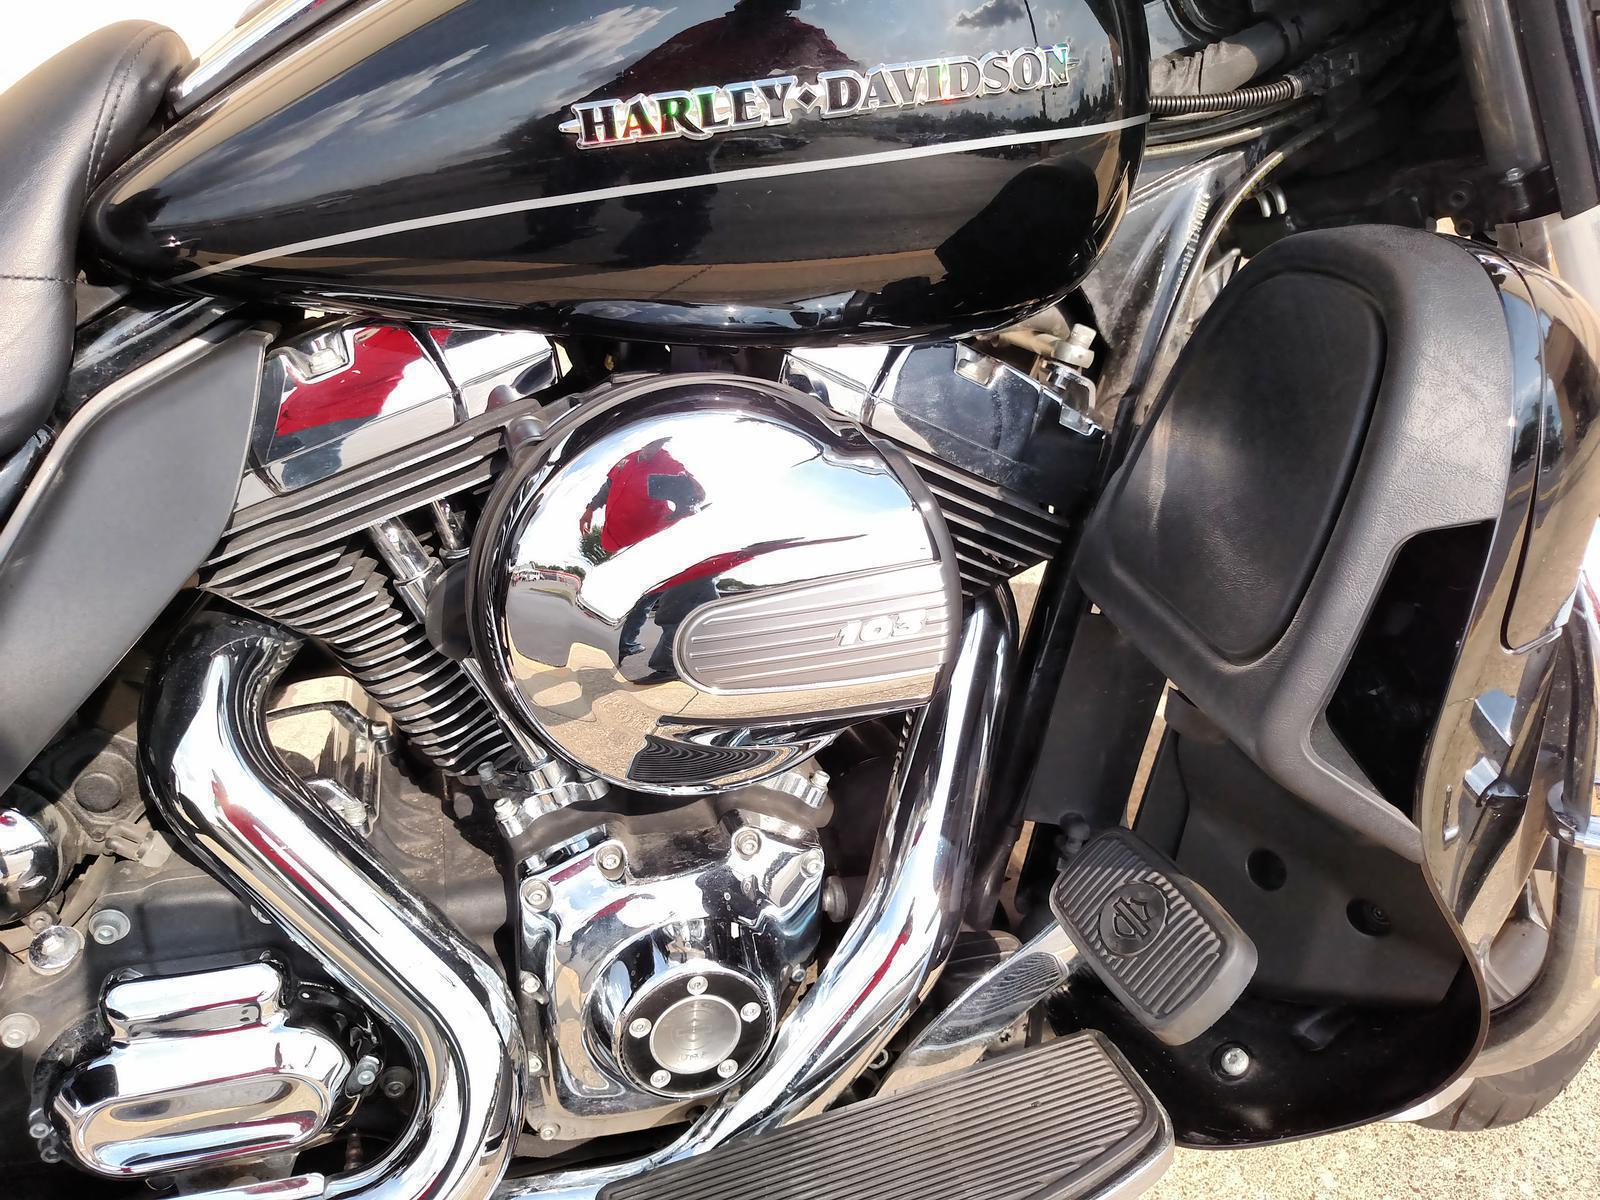 Why Does My Harley Pop Through The Carb